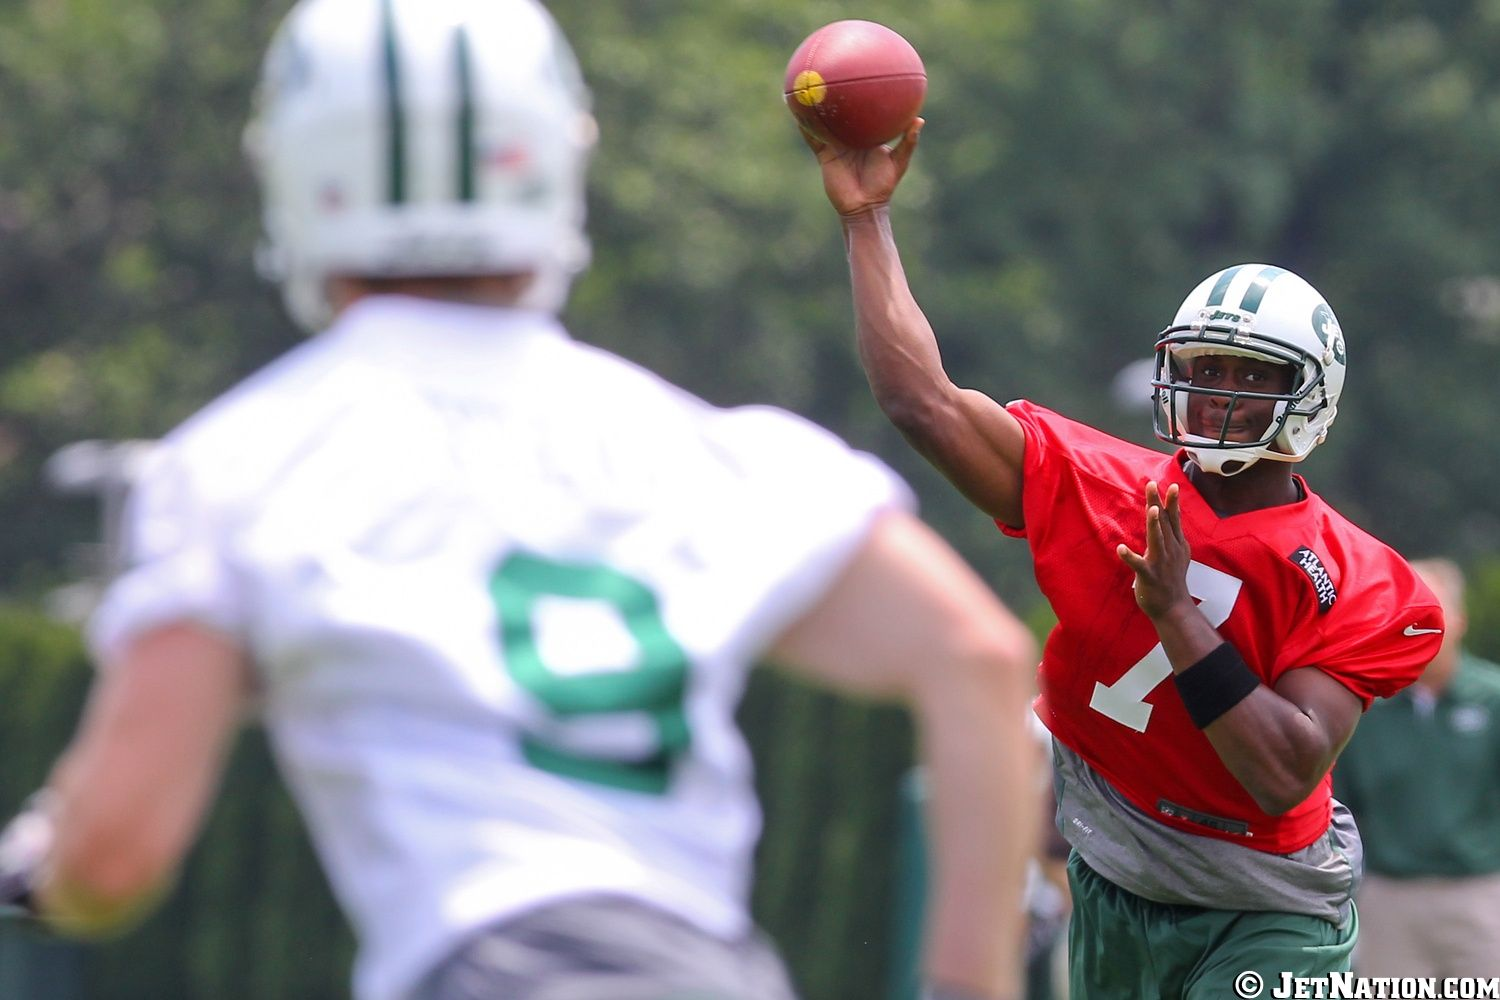 Geno Smith & Ben Obomanu